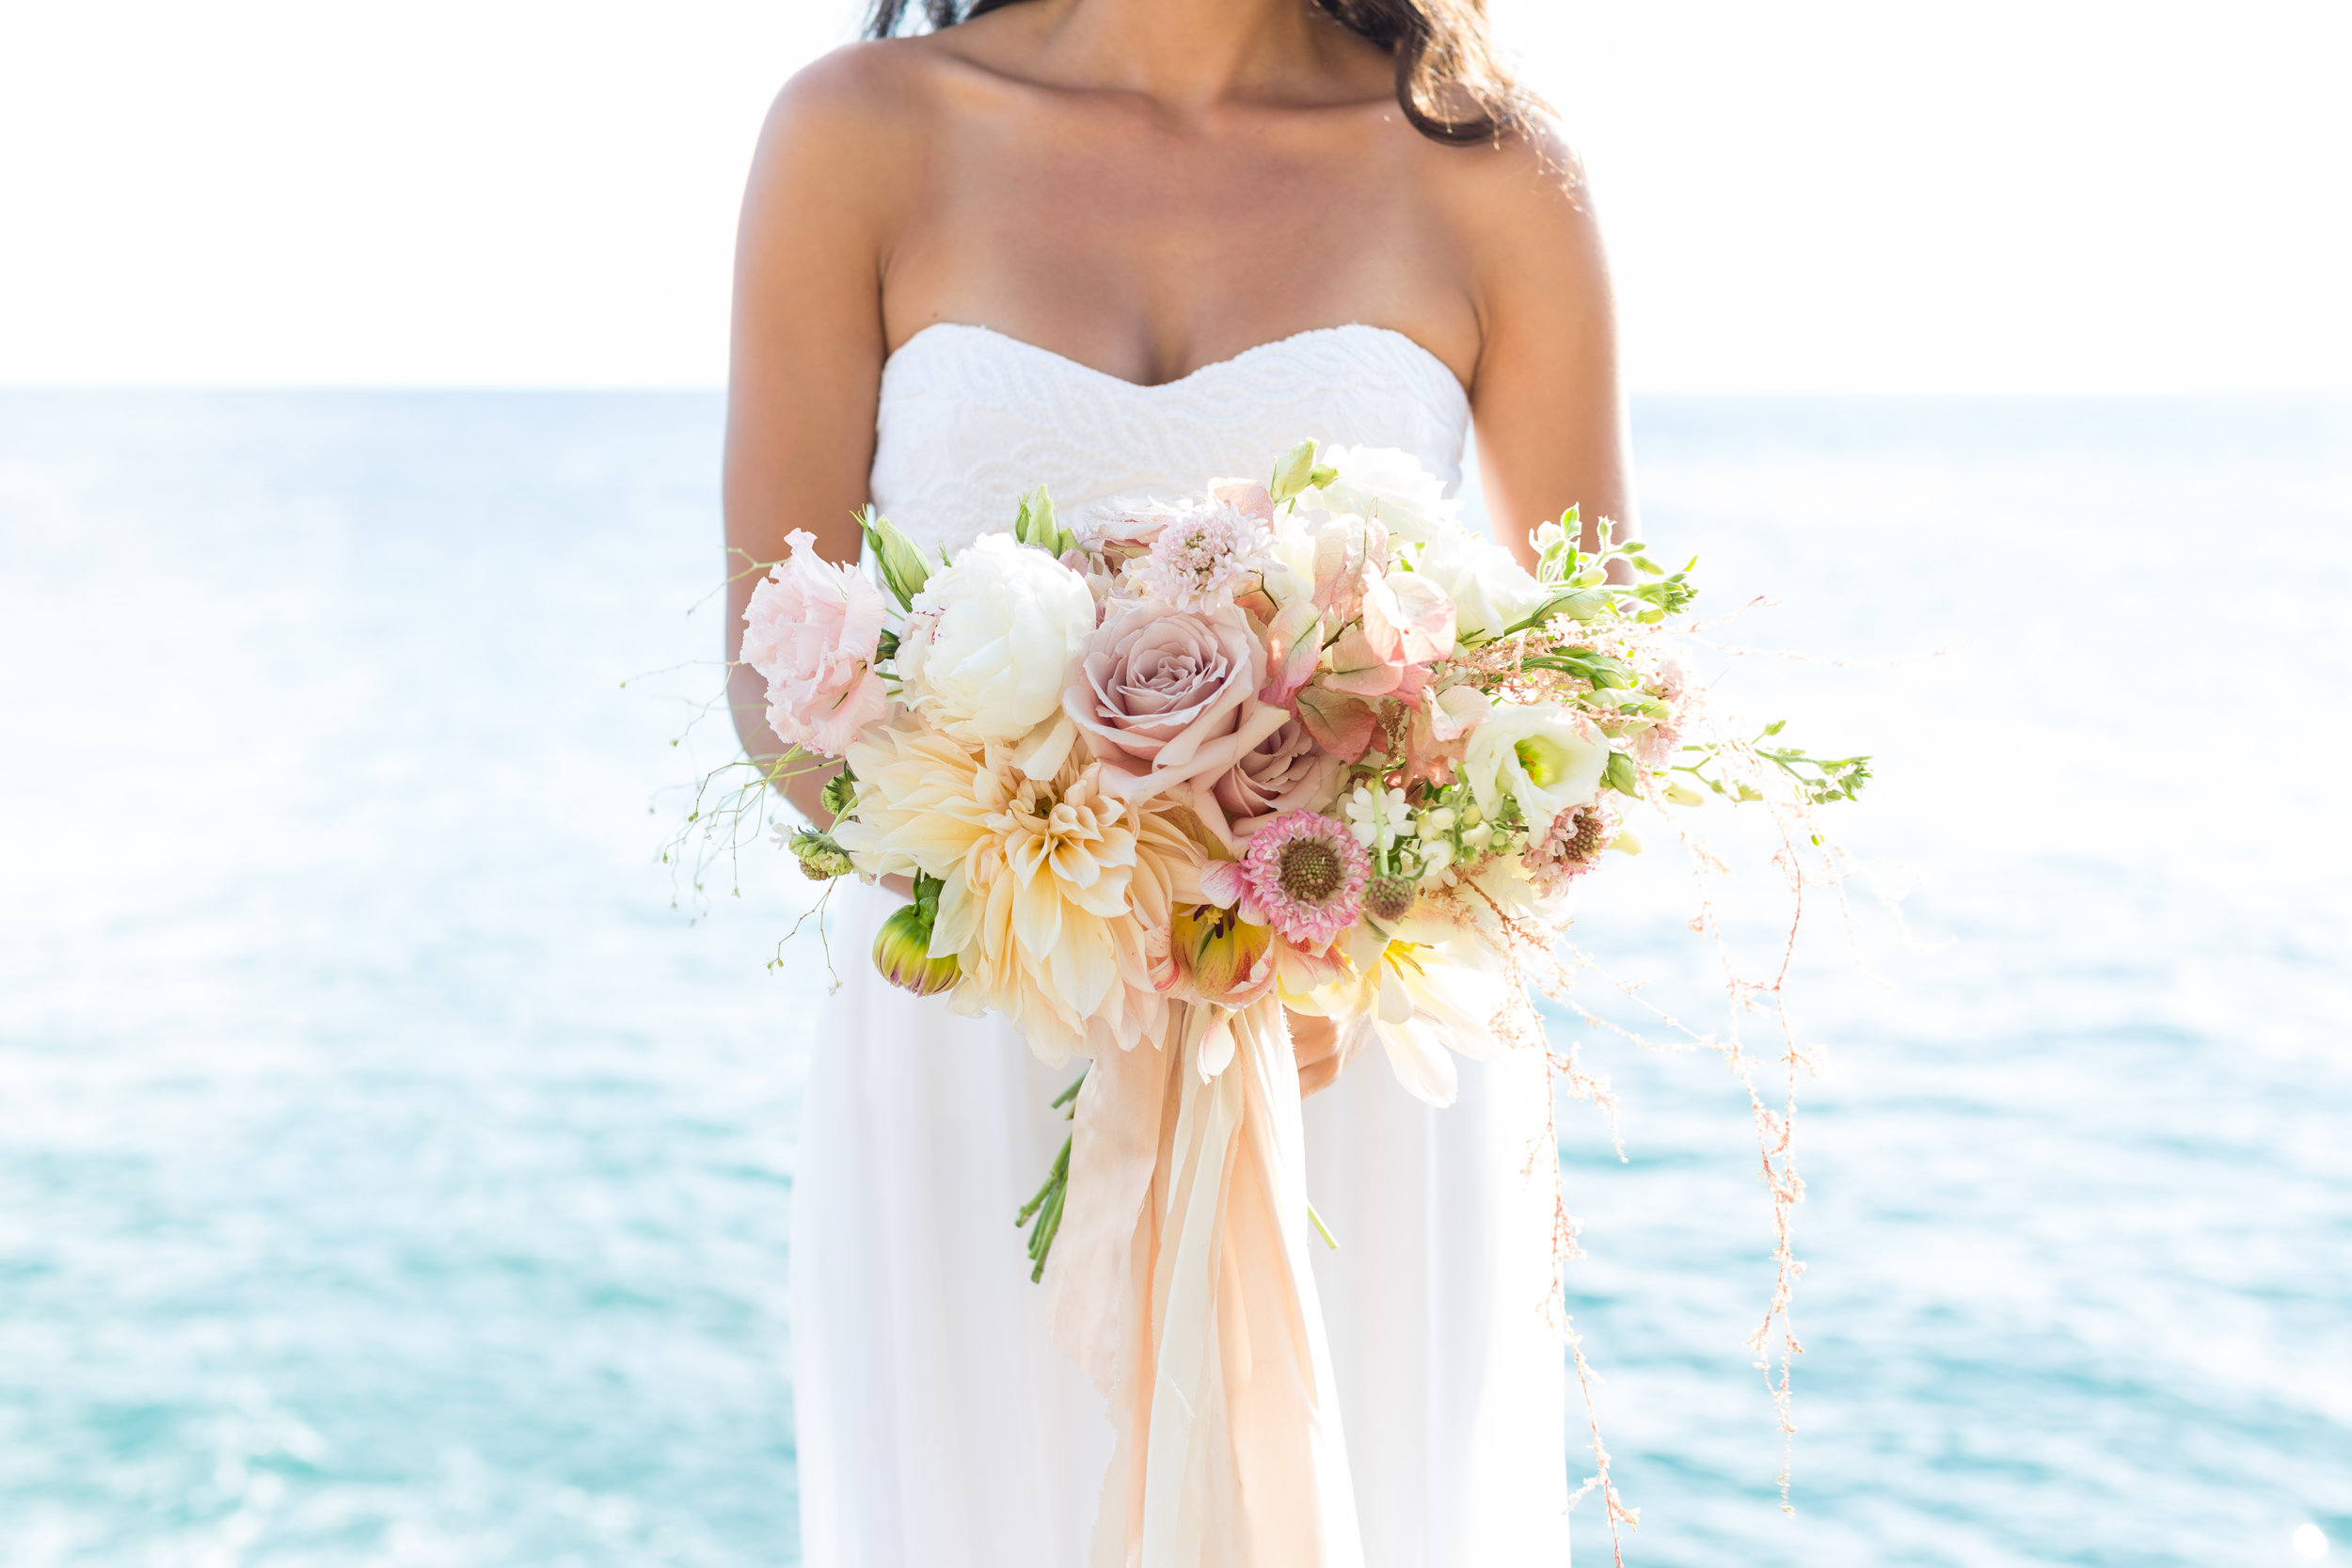 pink-bride-bouquet-bride hawaii.jpg